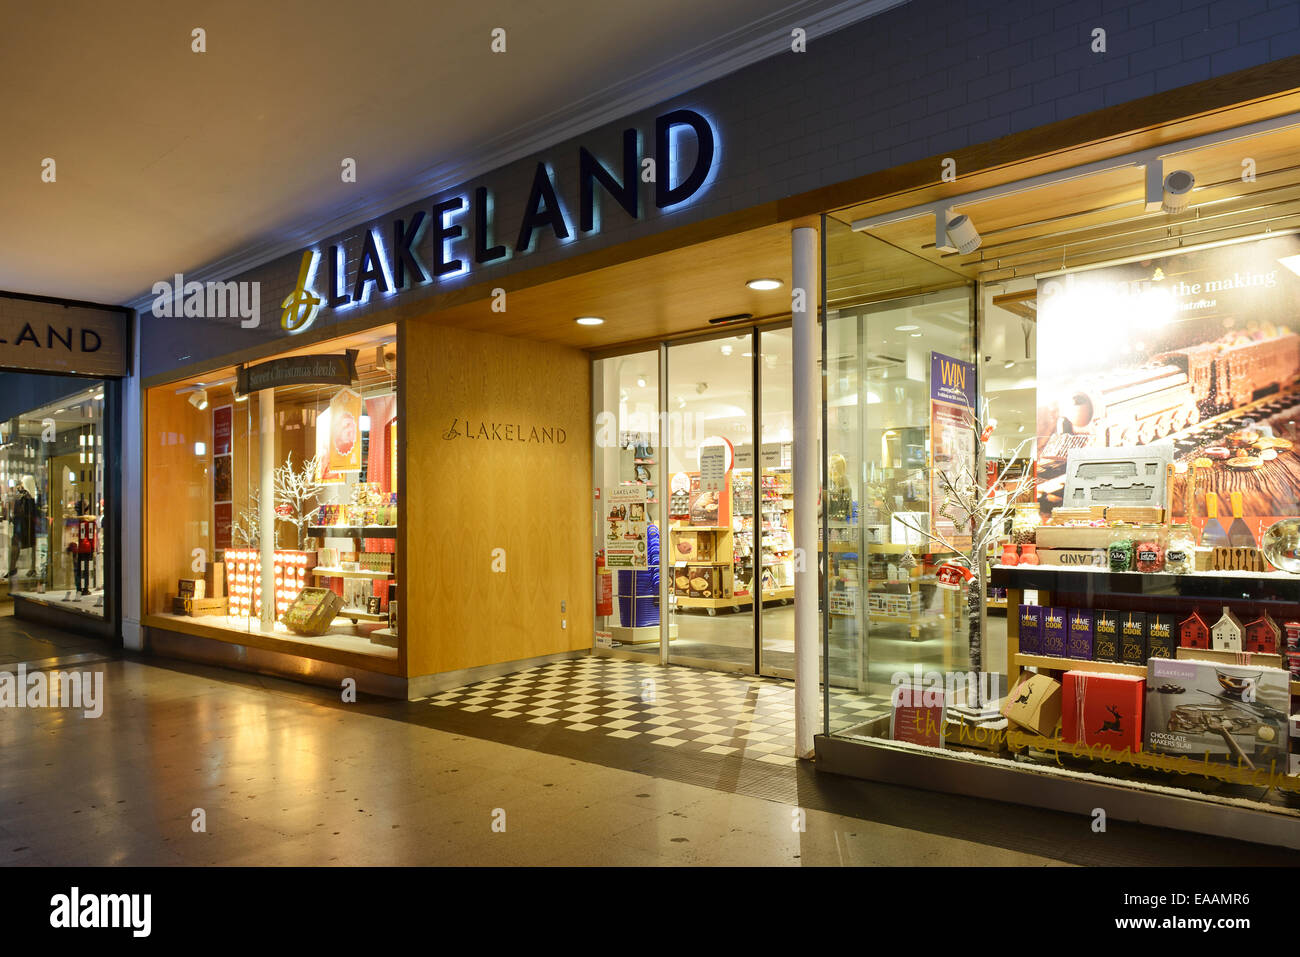 Lakeland kitchenware shop in Chester city centre UK - Stock Image